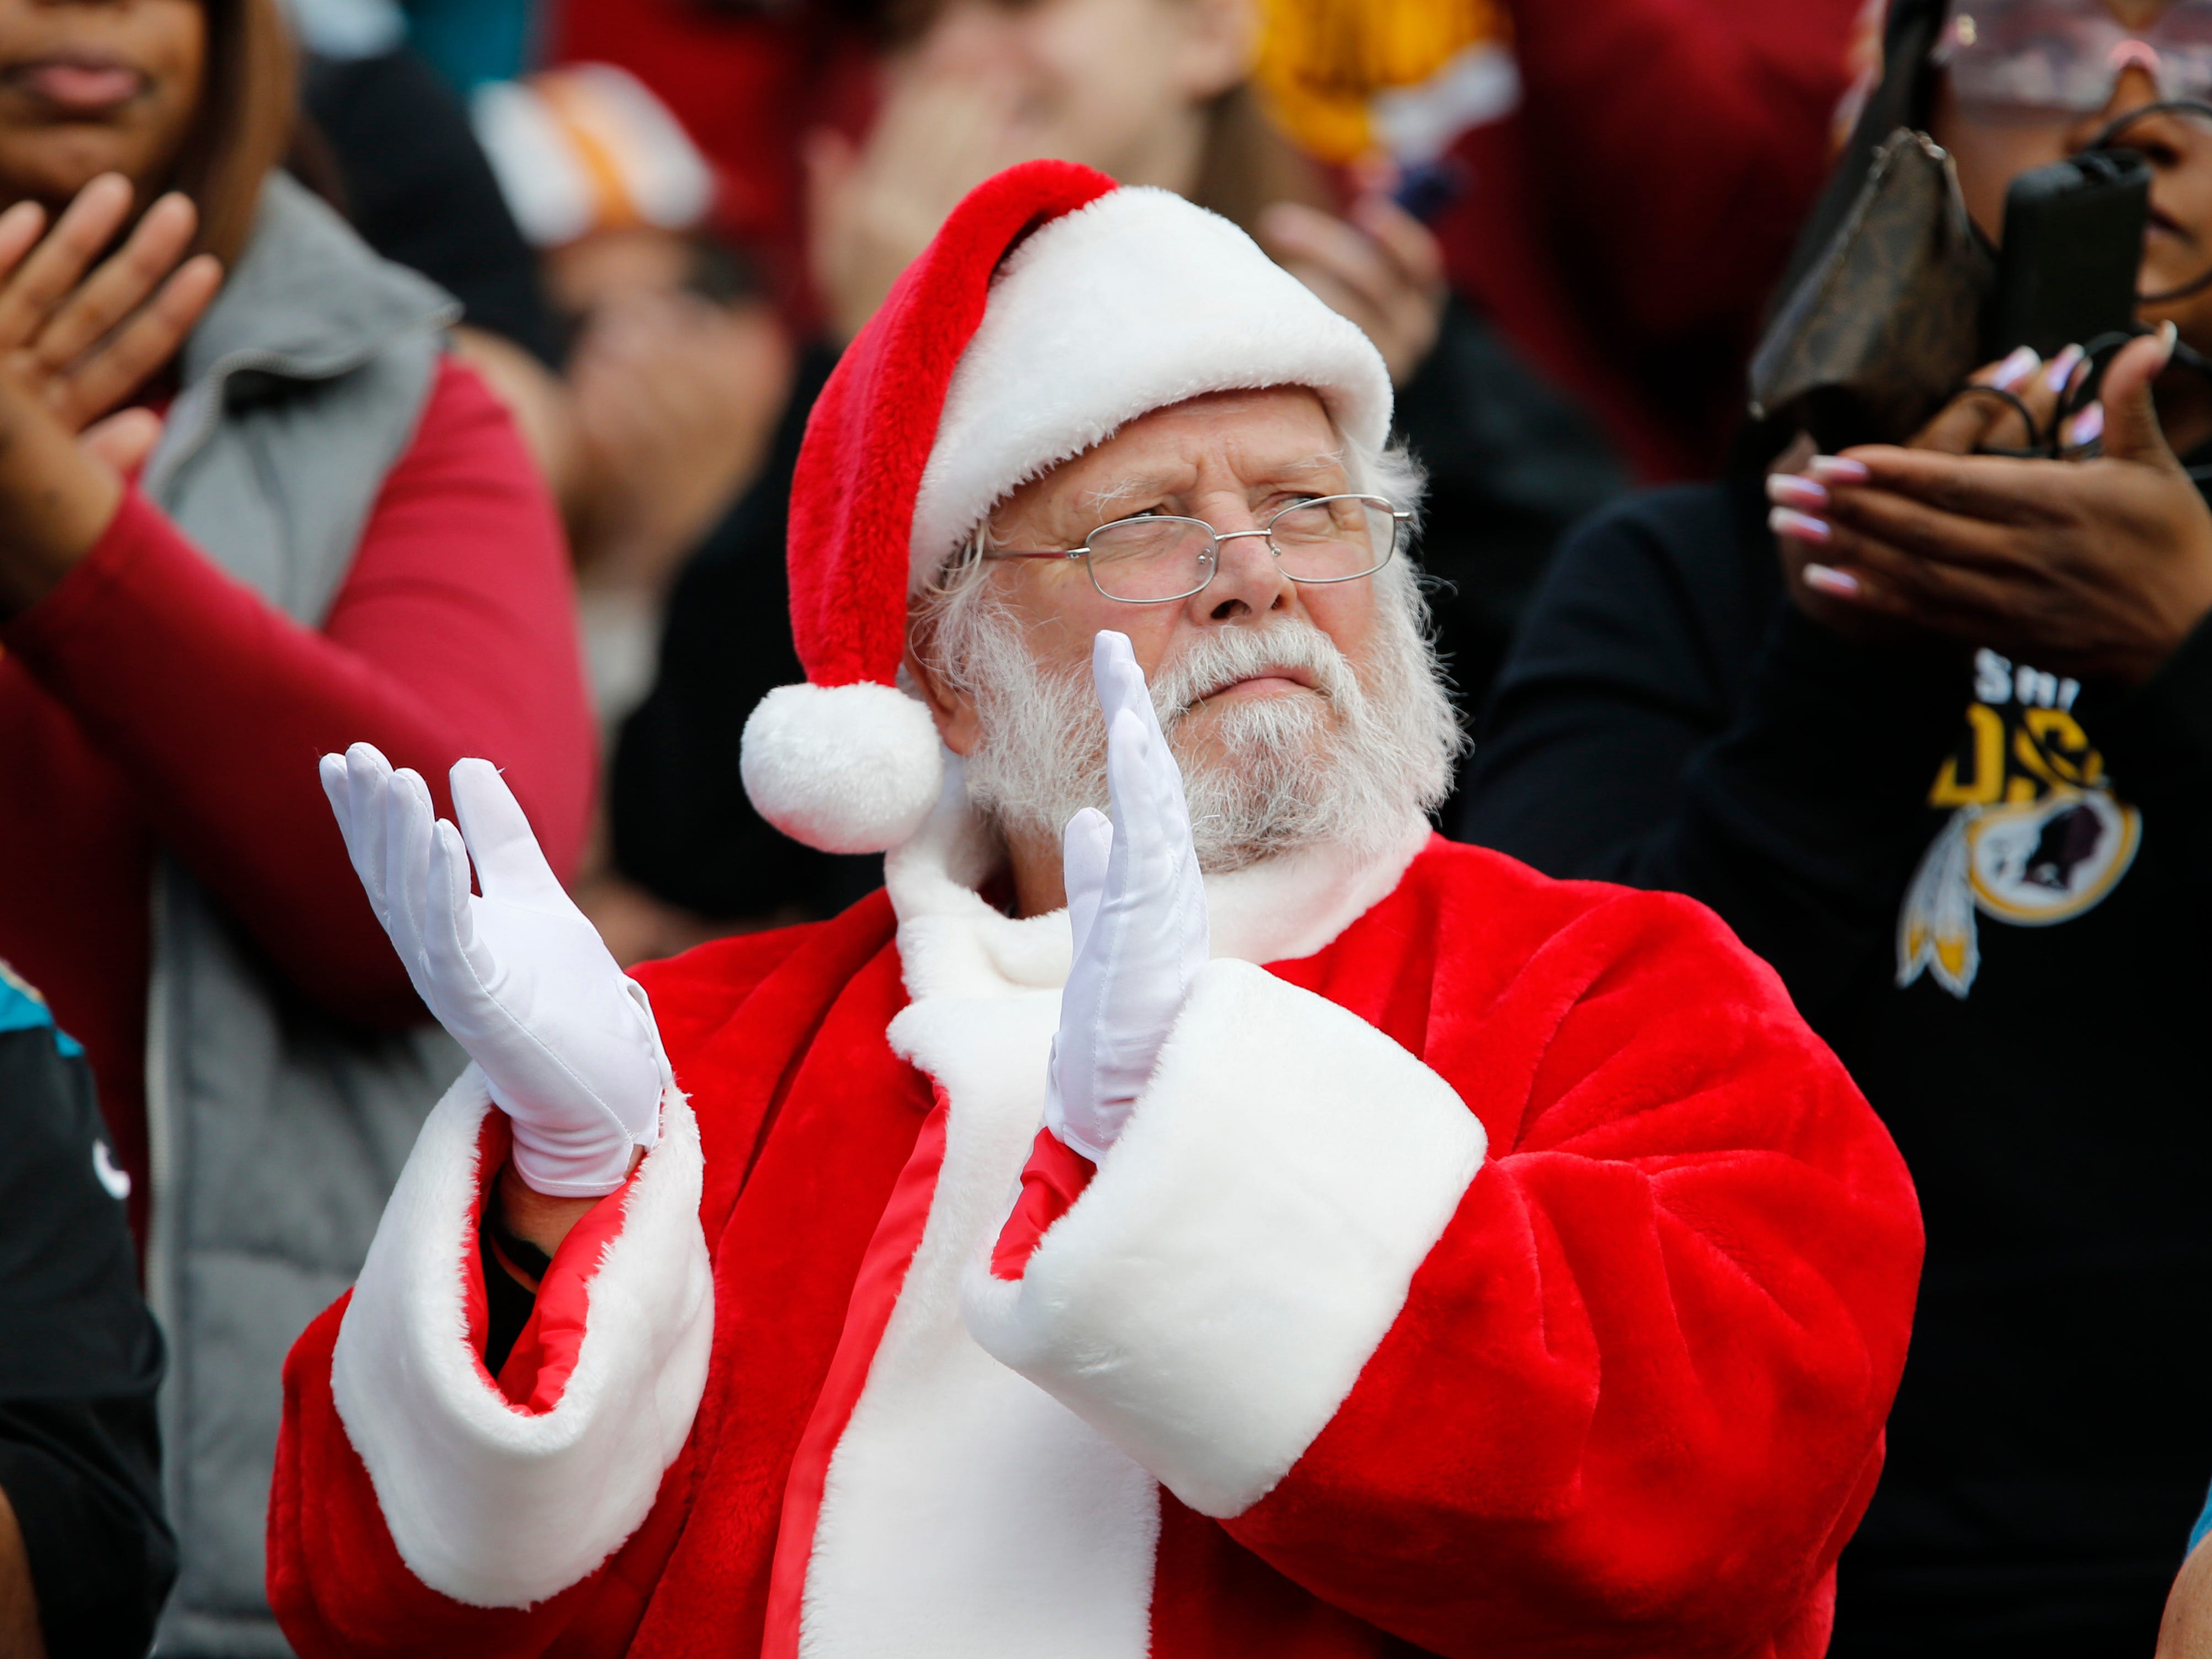 A fan dressed as Santa Claus reacts during the first quarter between the Jacksonville Jaguars and the Washington Redskins at TIAA Bank Field in Jacksonville, Fla. on Dec. 16, 2018.